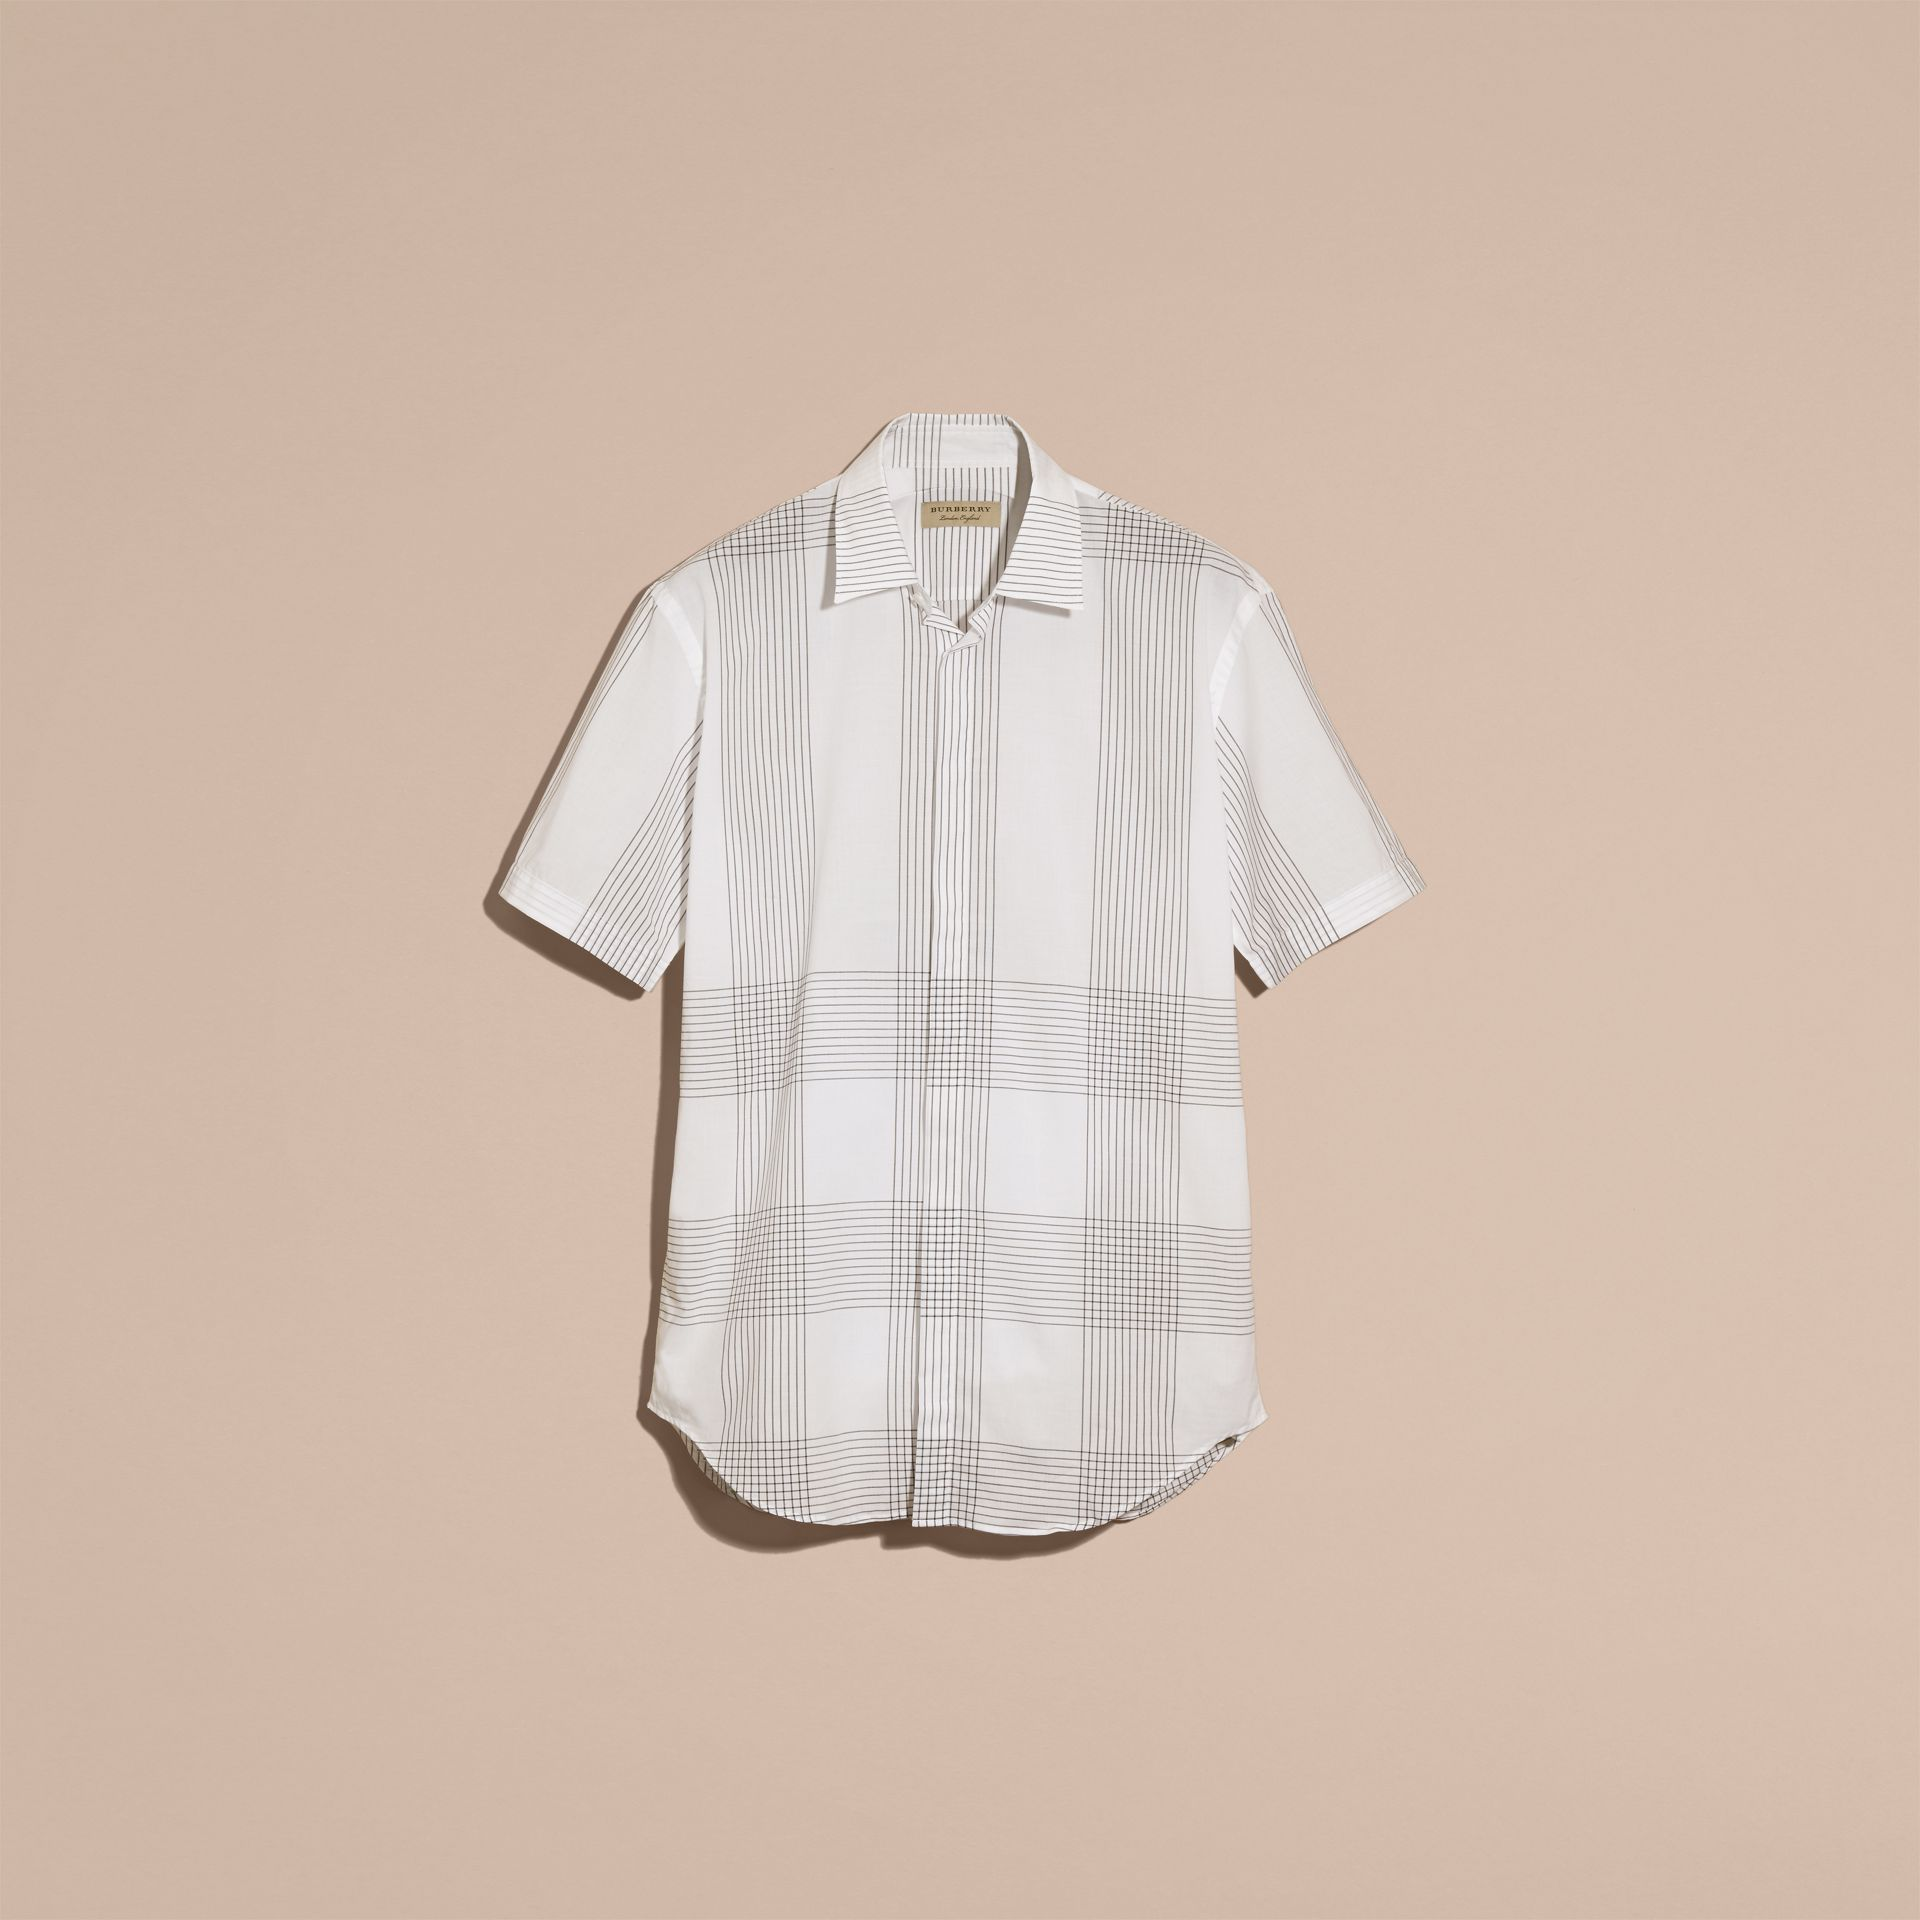 White Short-sleeved Check Cotton Shirt White - gallery image 4